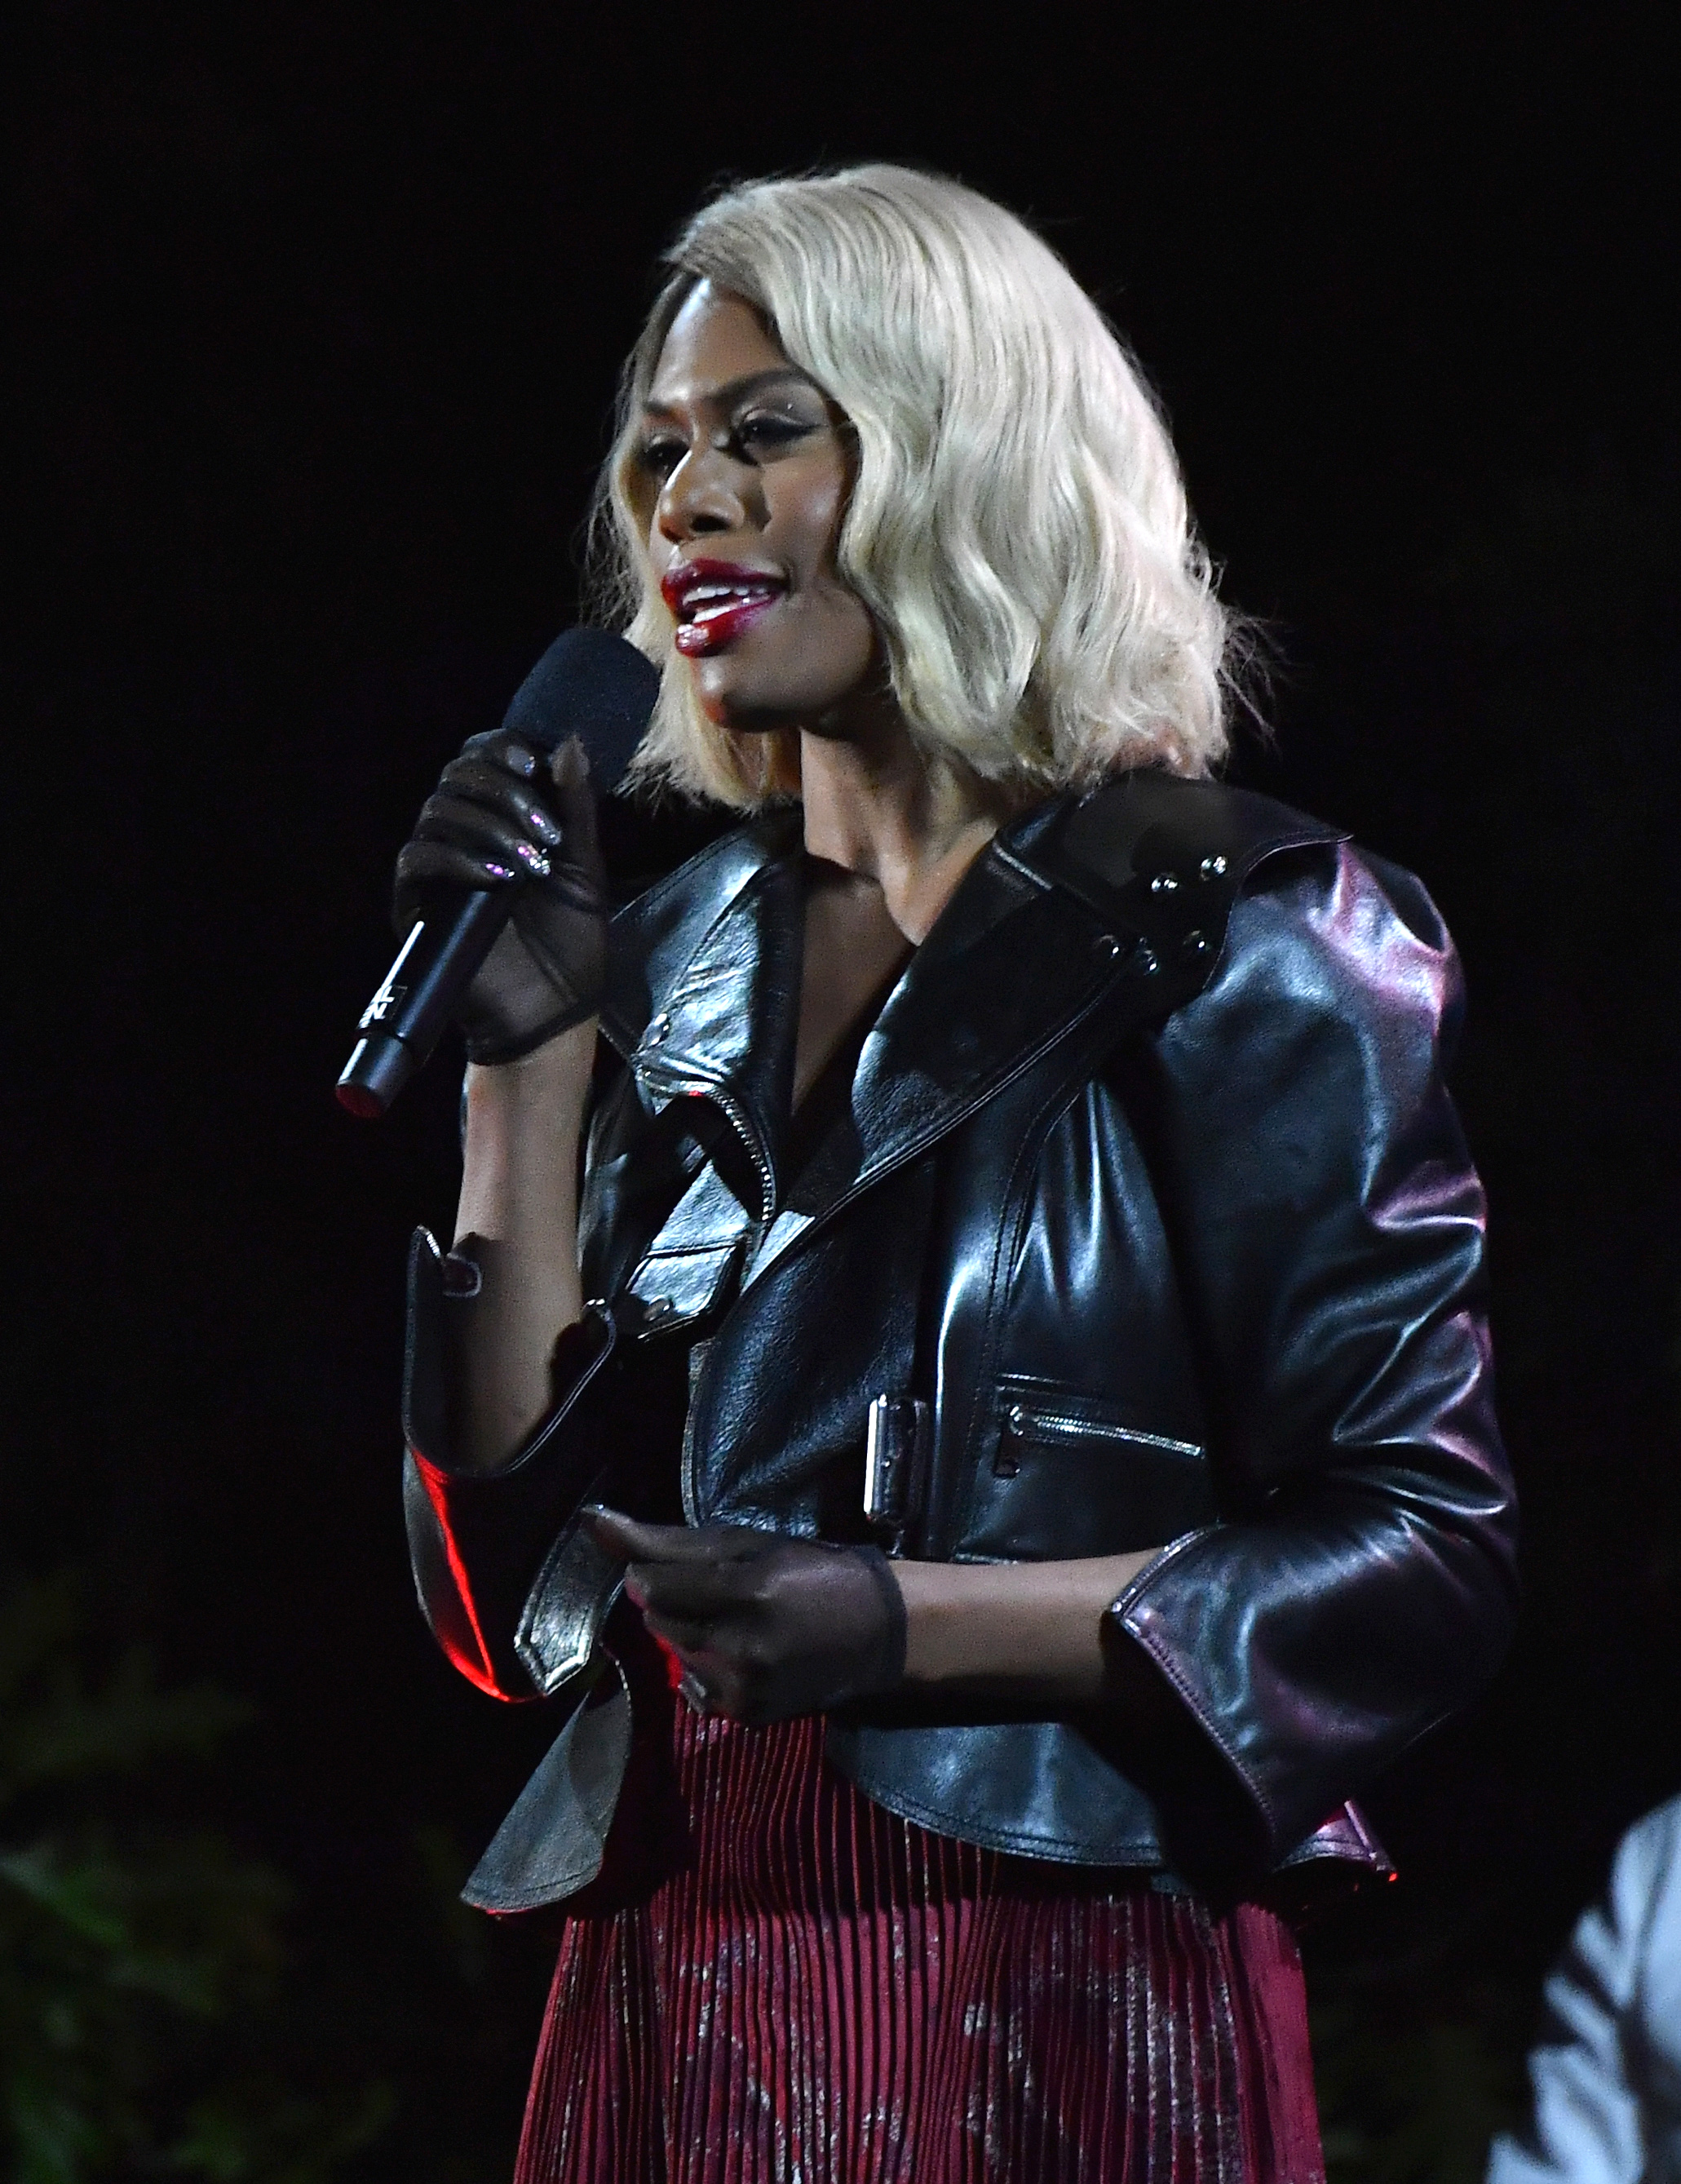 US actress Laverne Cox speaks onstage at the 2019 Global Citizen Festival: Power The Movement in Central Park in New York on September 28, 2019. (Photo by Angela Weiss / AFP)        (Photo credit should read ANGELA WEISS/AFP/Getty Images)